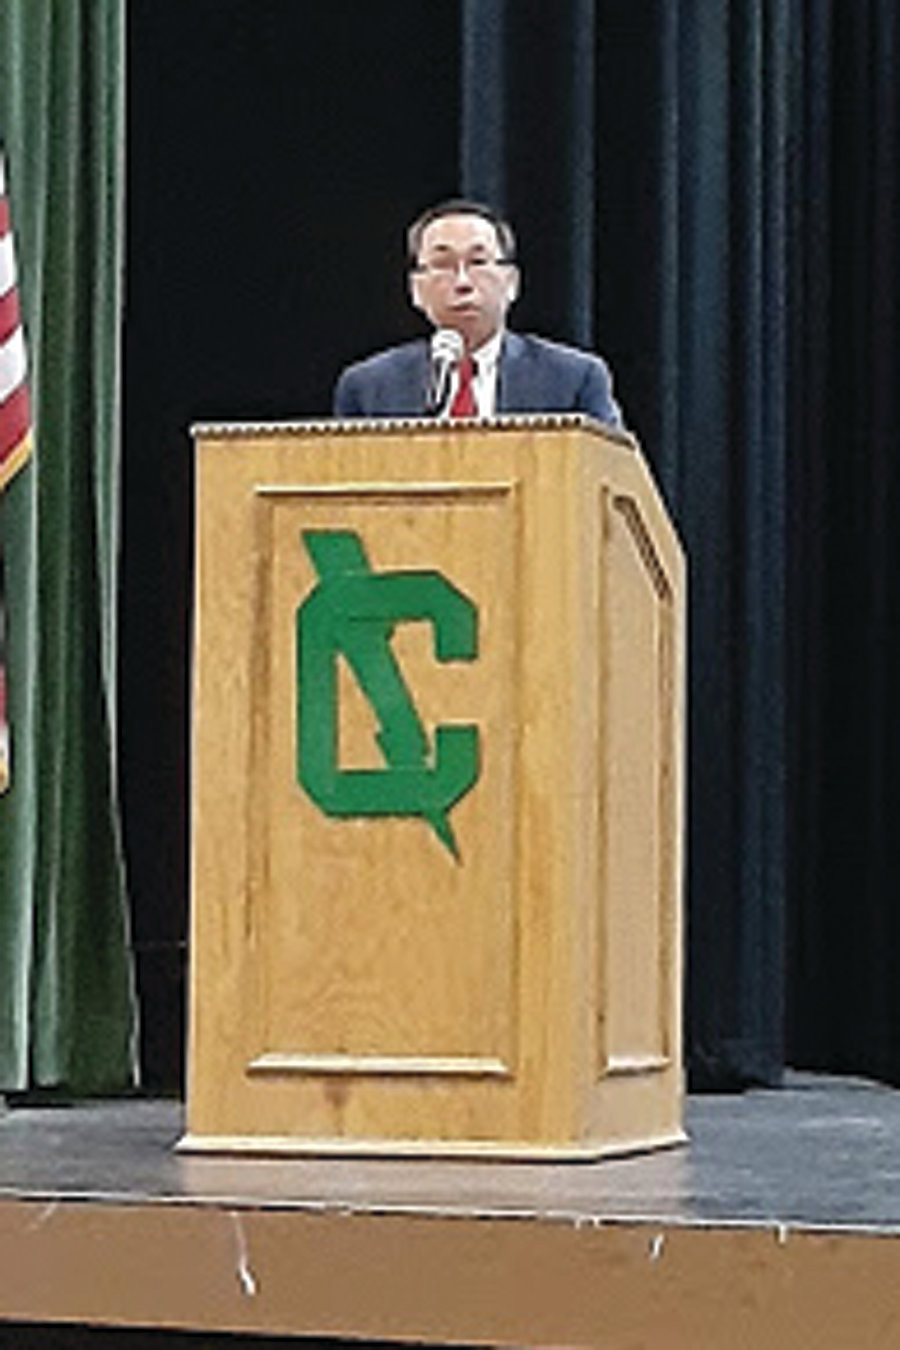 WELCOME TO CRANSTON: Mayor Allan Fung thanked Herren for sharing his story with the packed audience at Cranston High School East.